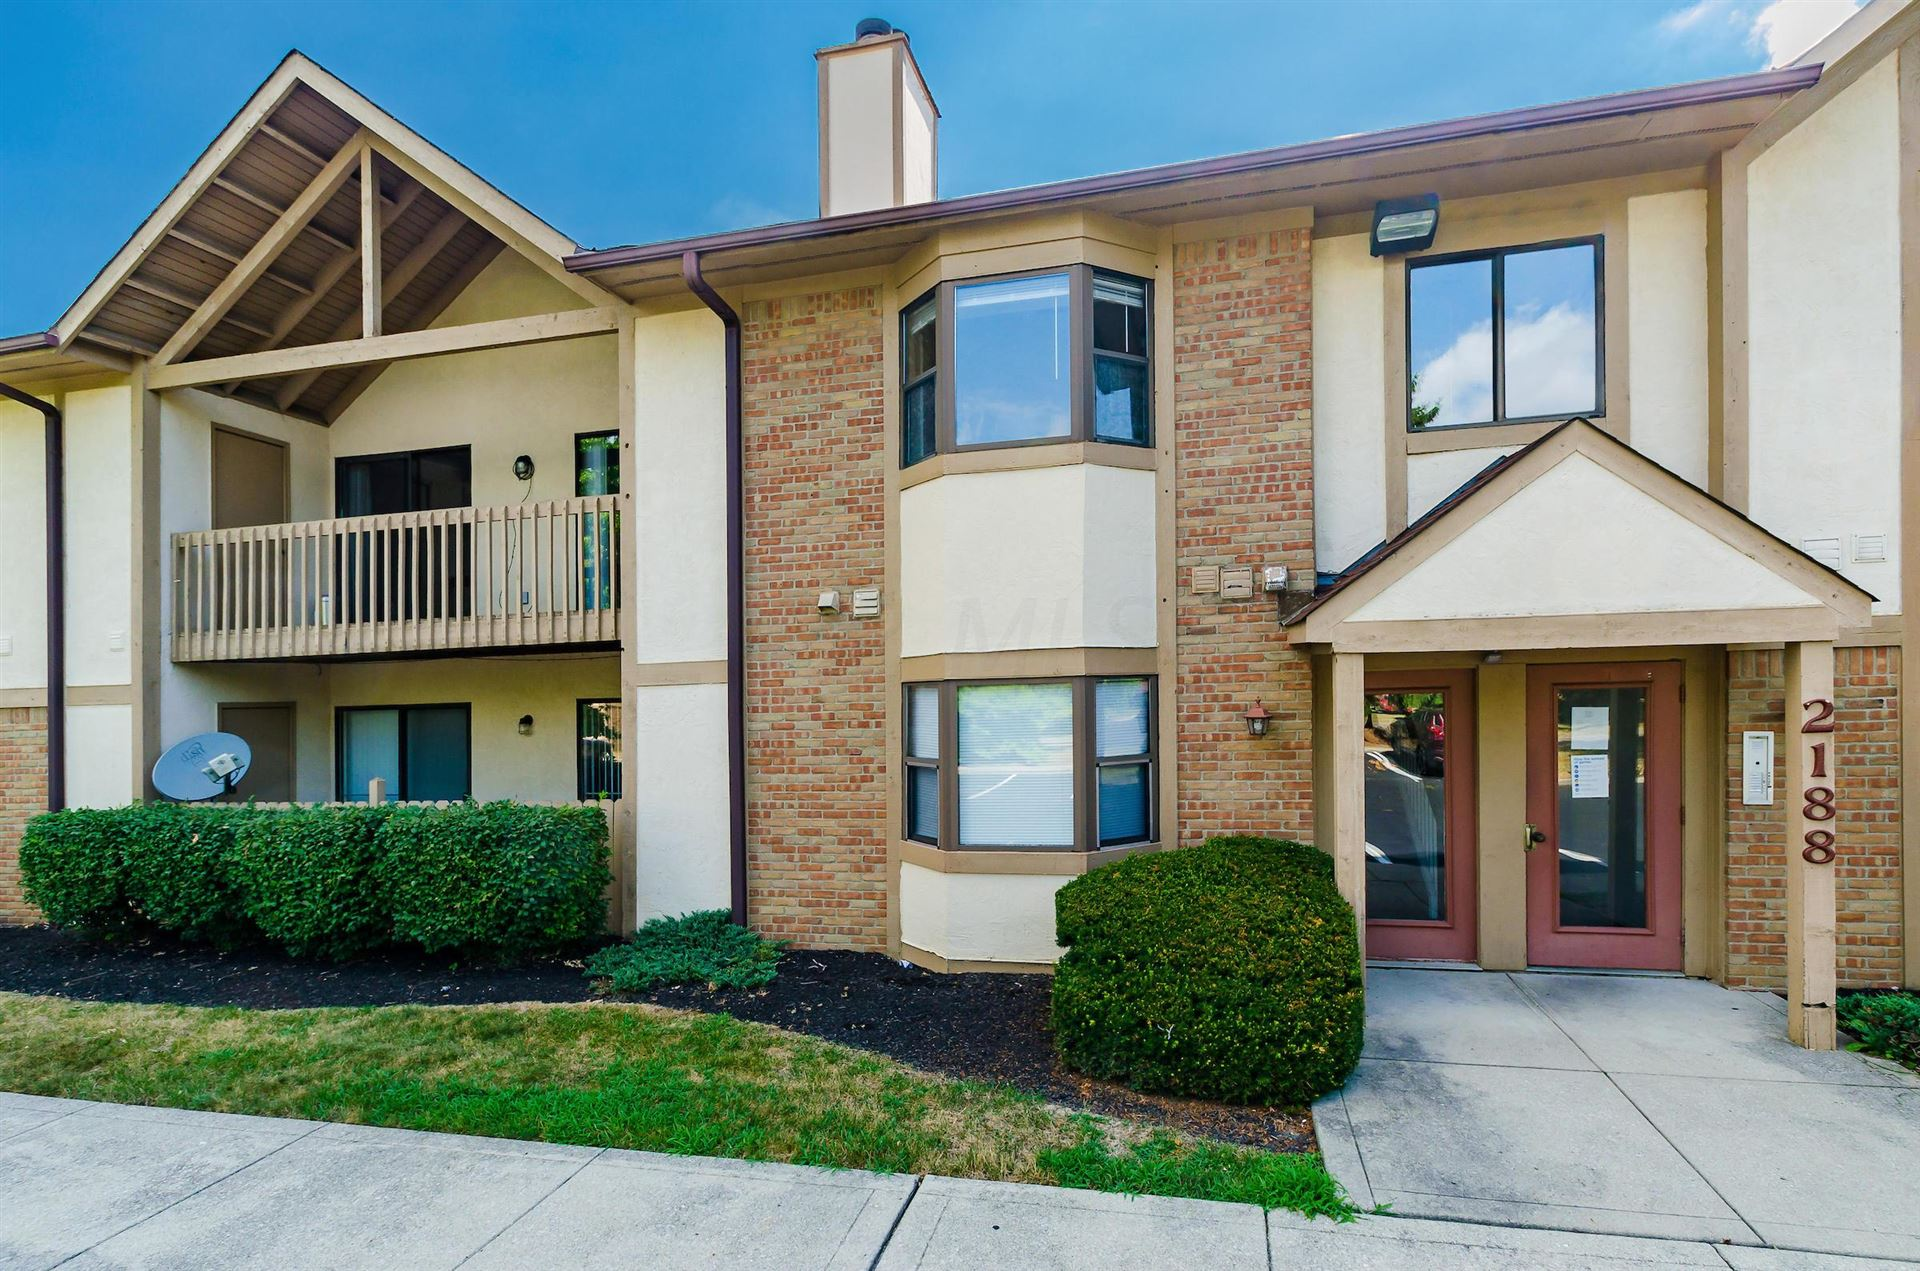 2188 Hedgerow Road #2188E, Columbus, OH 43220 - #: 220023880